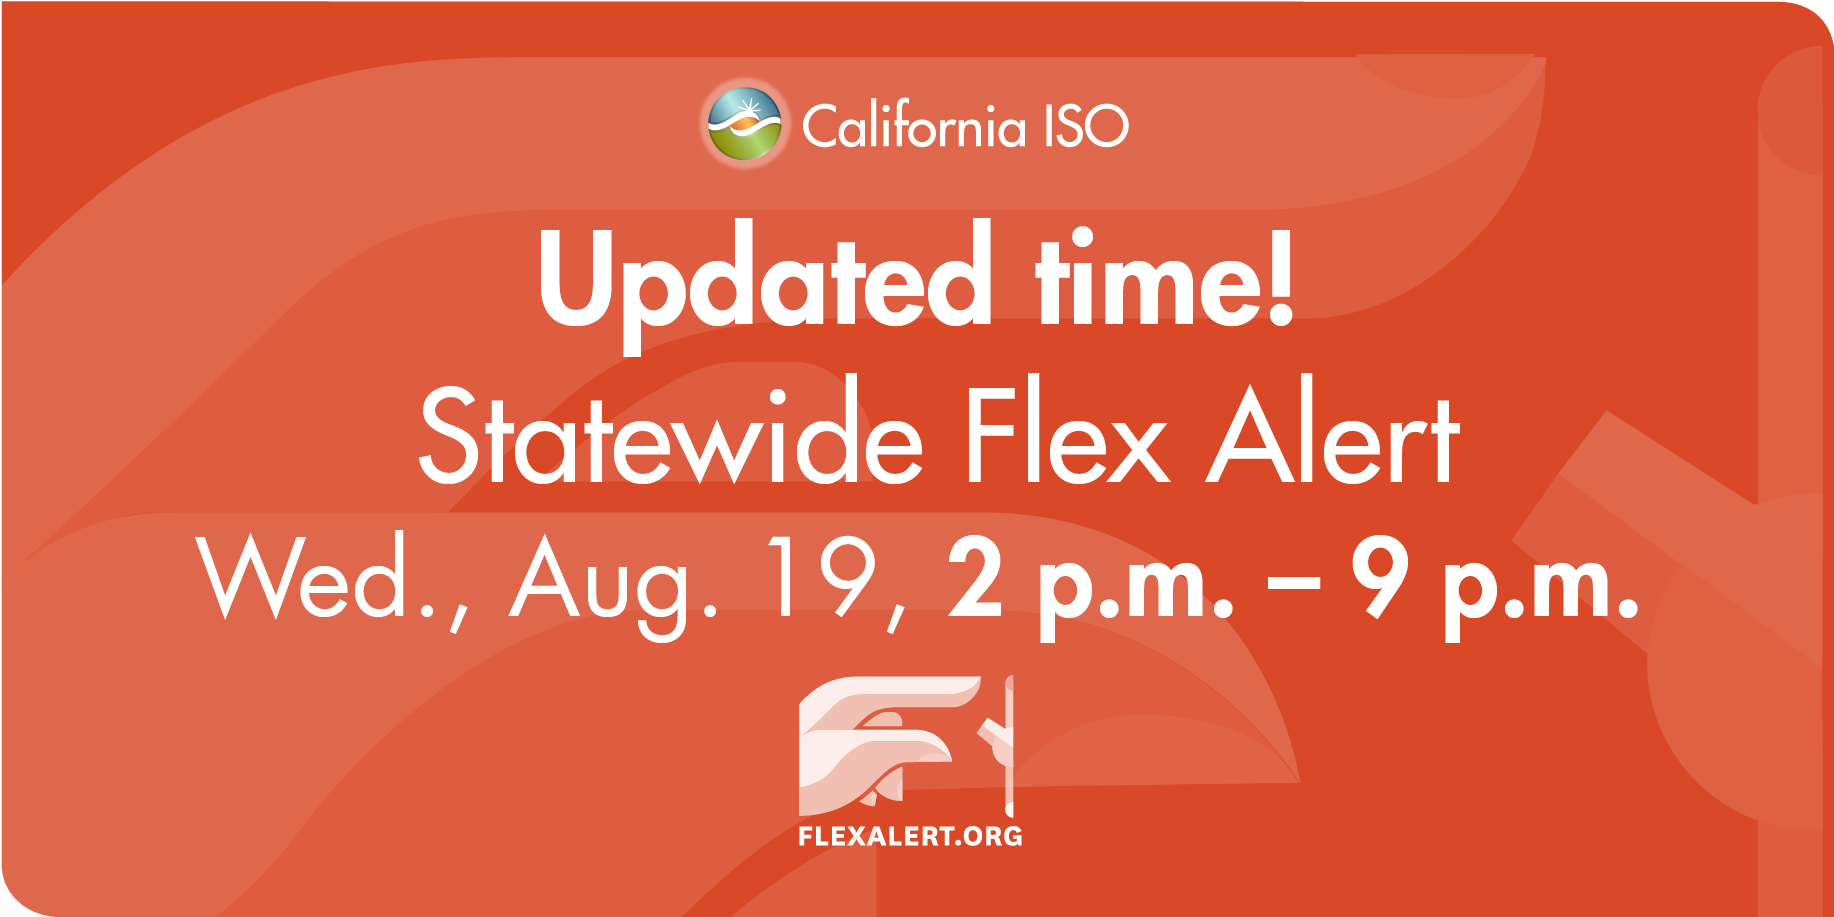 ISO News Release: Conservation Needed Earlier In Day; Flex Alert Issued For 2 to 9 p.m.